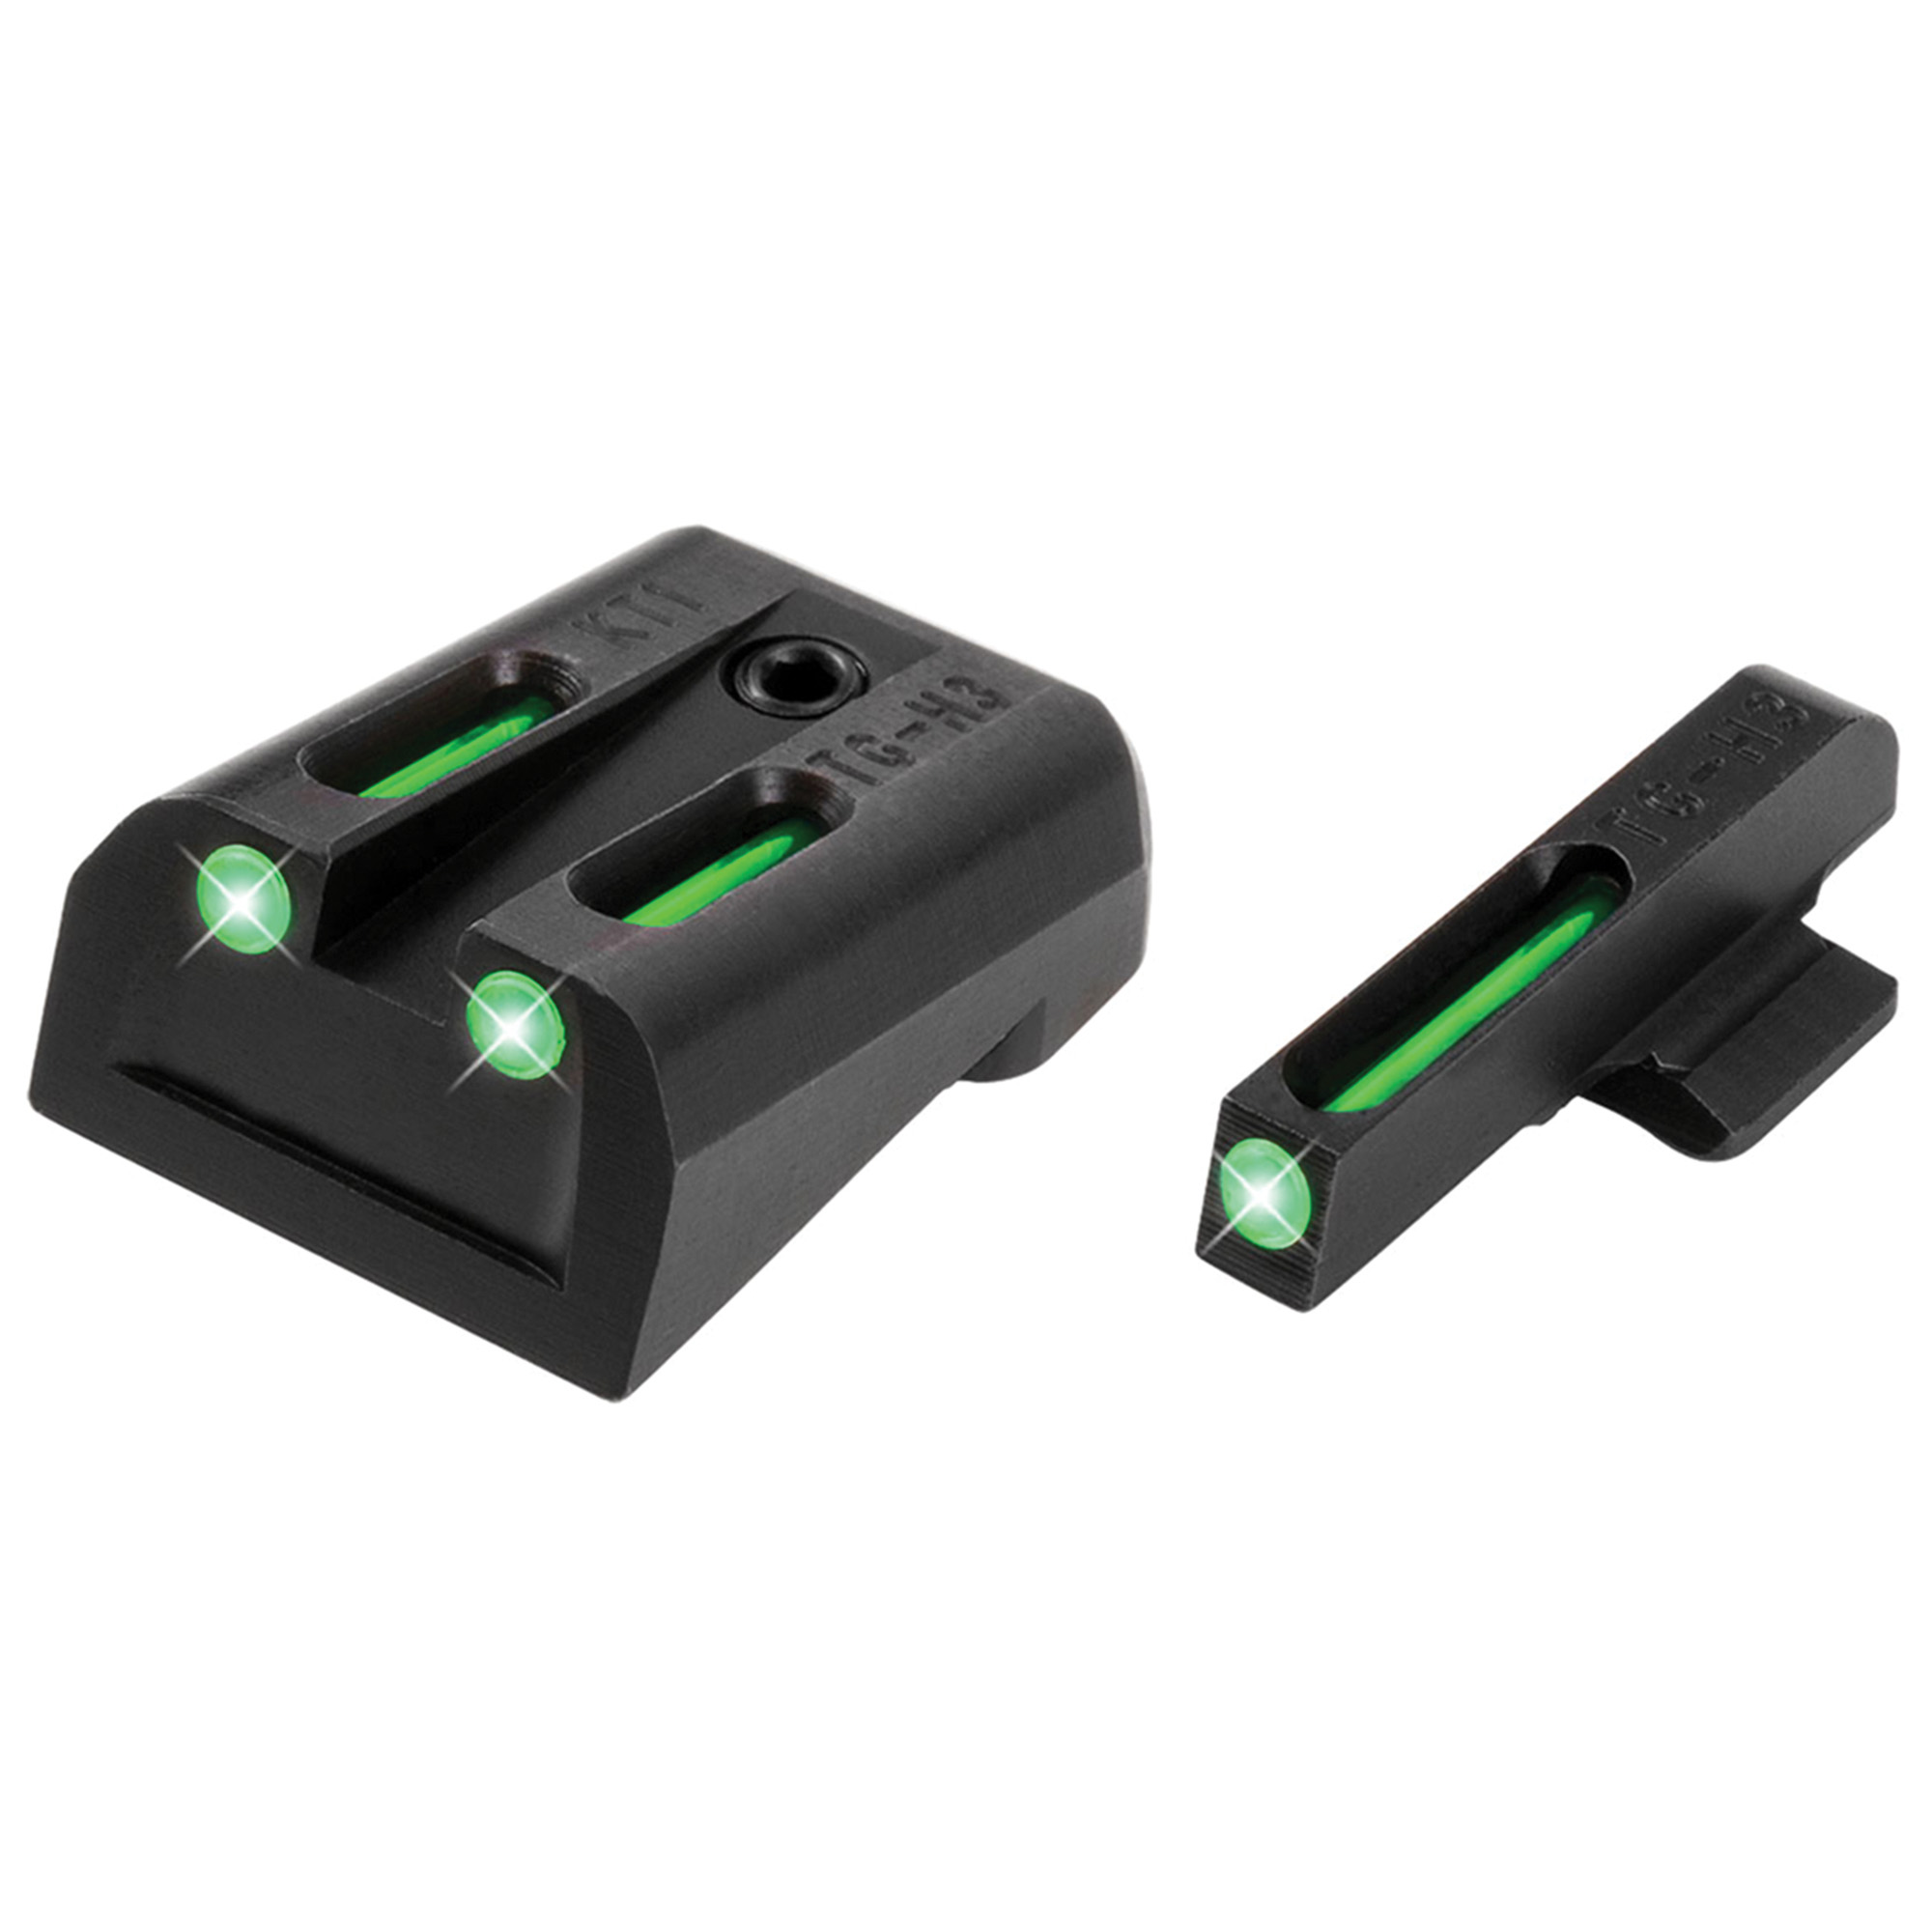 """Truglo Kimber Set (Green/Green)- When you need to make a fast and accurate shot"""" brightness counts. They brought fiber-optics to the shooting sports industry years ago for this very reason. They have now paired them with their tritium night sights to create a consistently bright sight picture-day or night! Their patented combination of Tritium and Fiber-optic technologies unites the best of both worlds. Whether you are in glaring daylight or complete darkness"""" you can count on TFO(R) to provide a bright and reliable sight picture."""